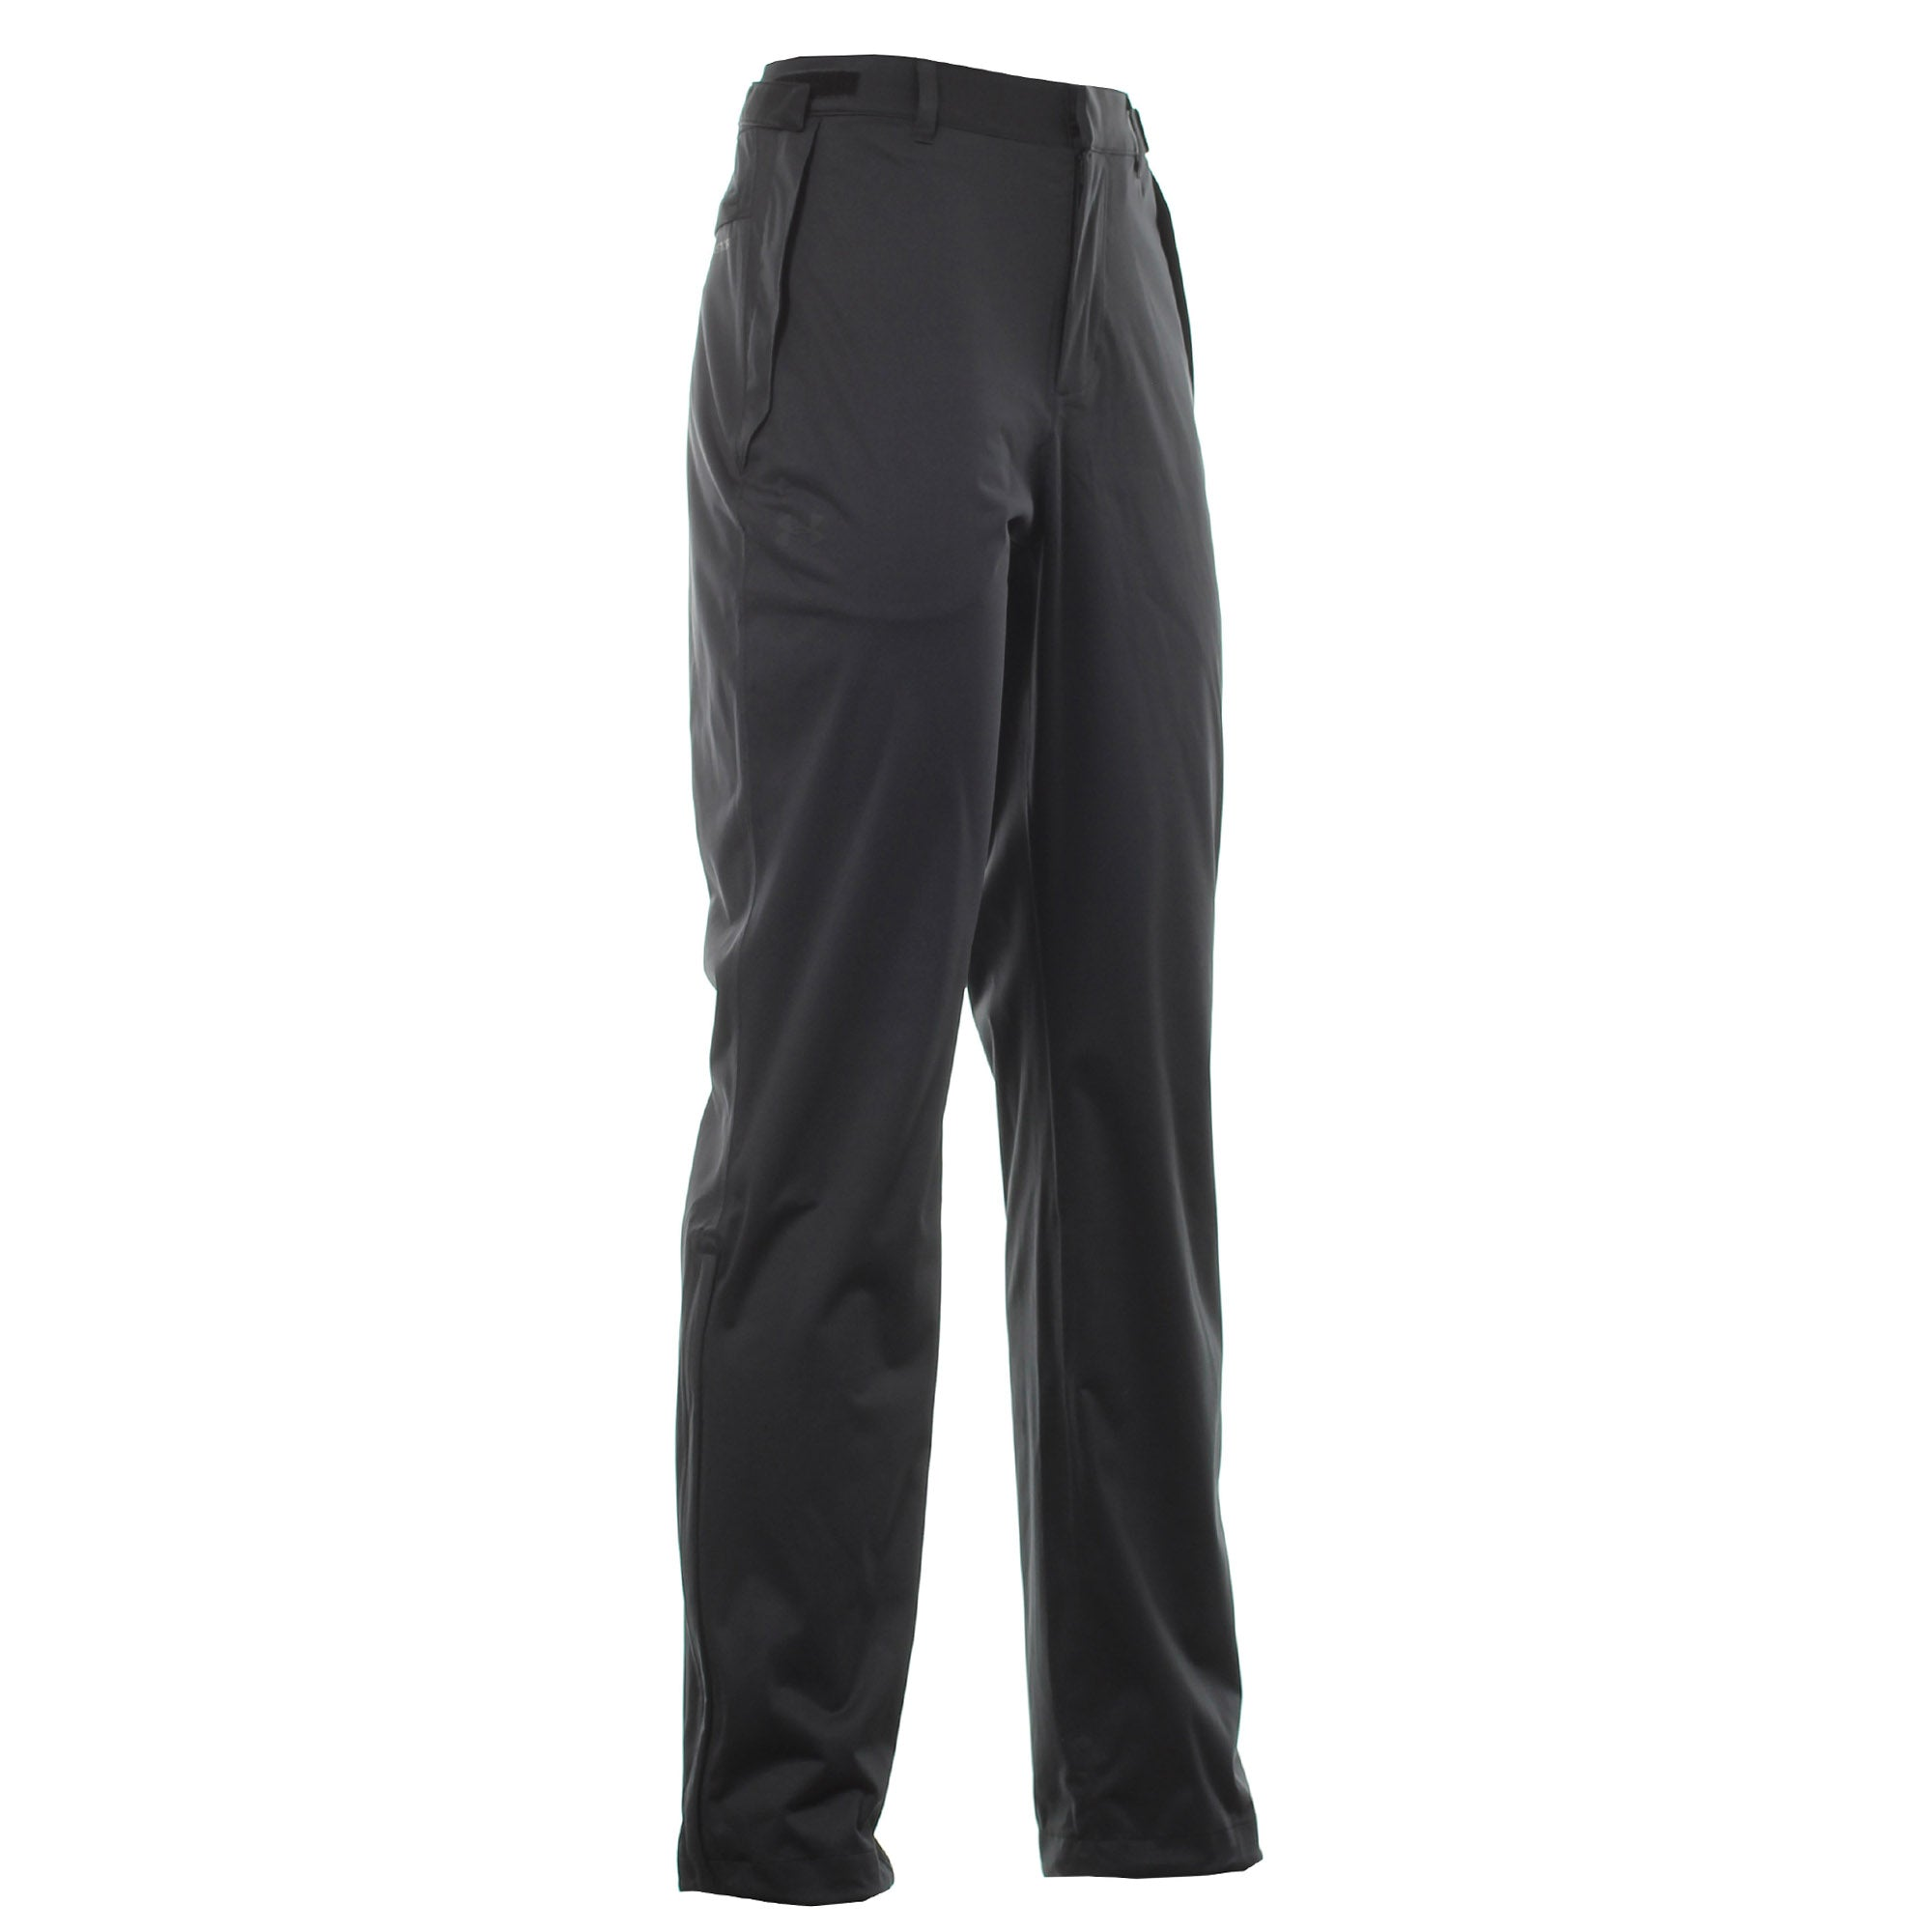 Under Armour Golf Storm Waterproof Pant 1344086